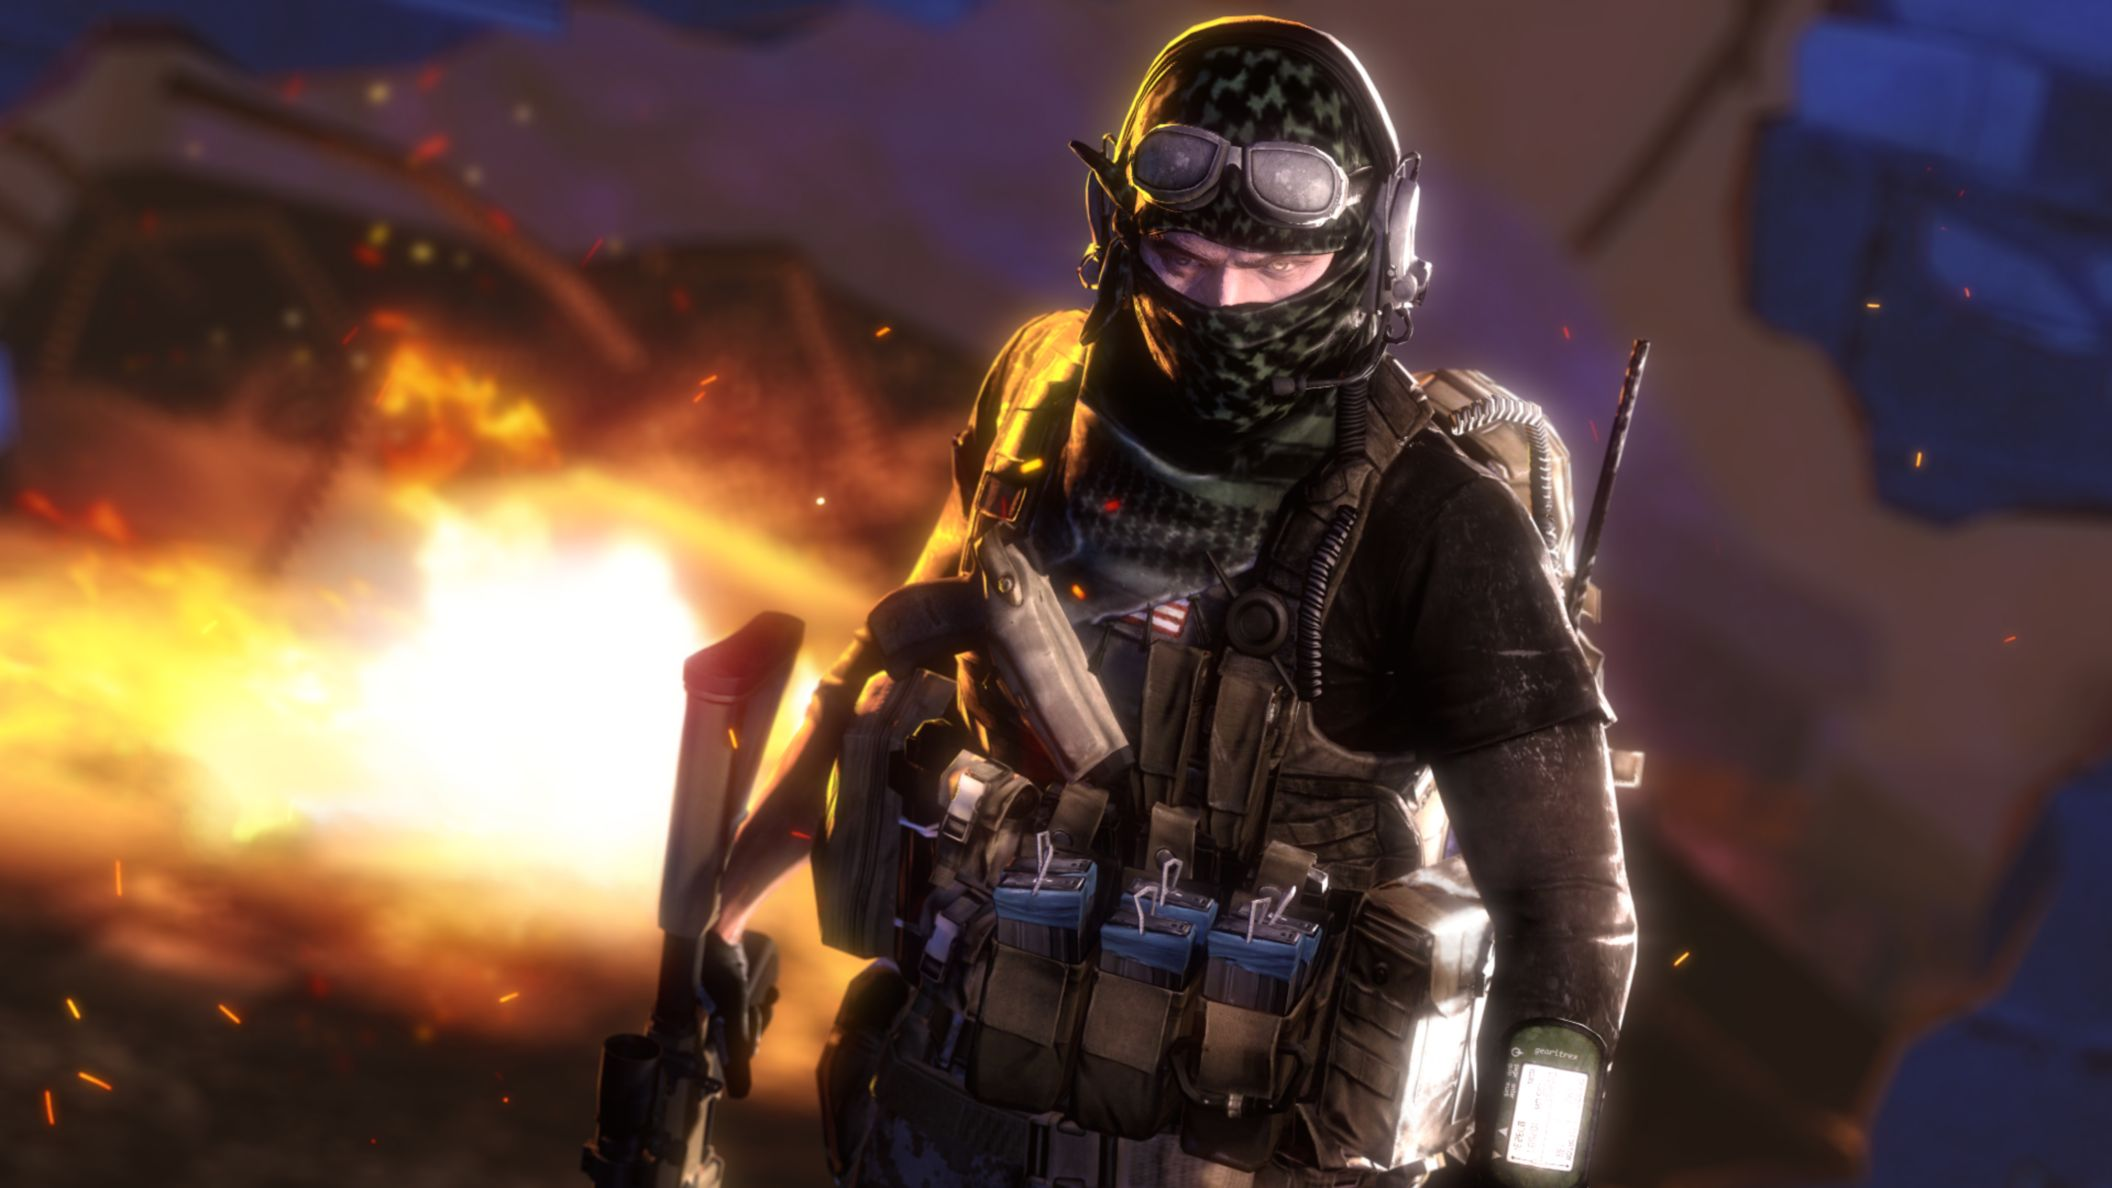 Download free HD Cool Battlefield 4 Recon Wallpaper, image